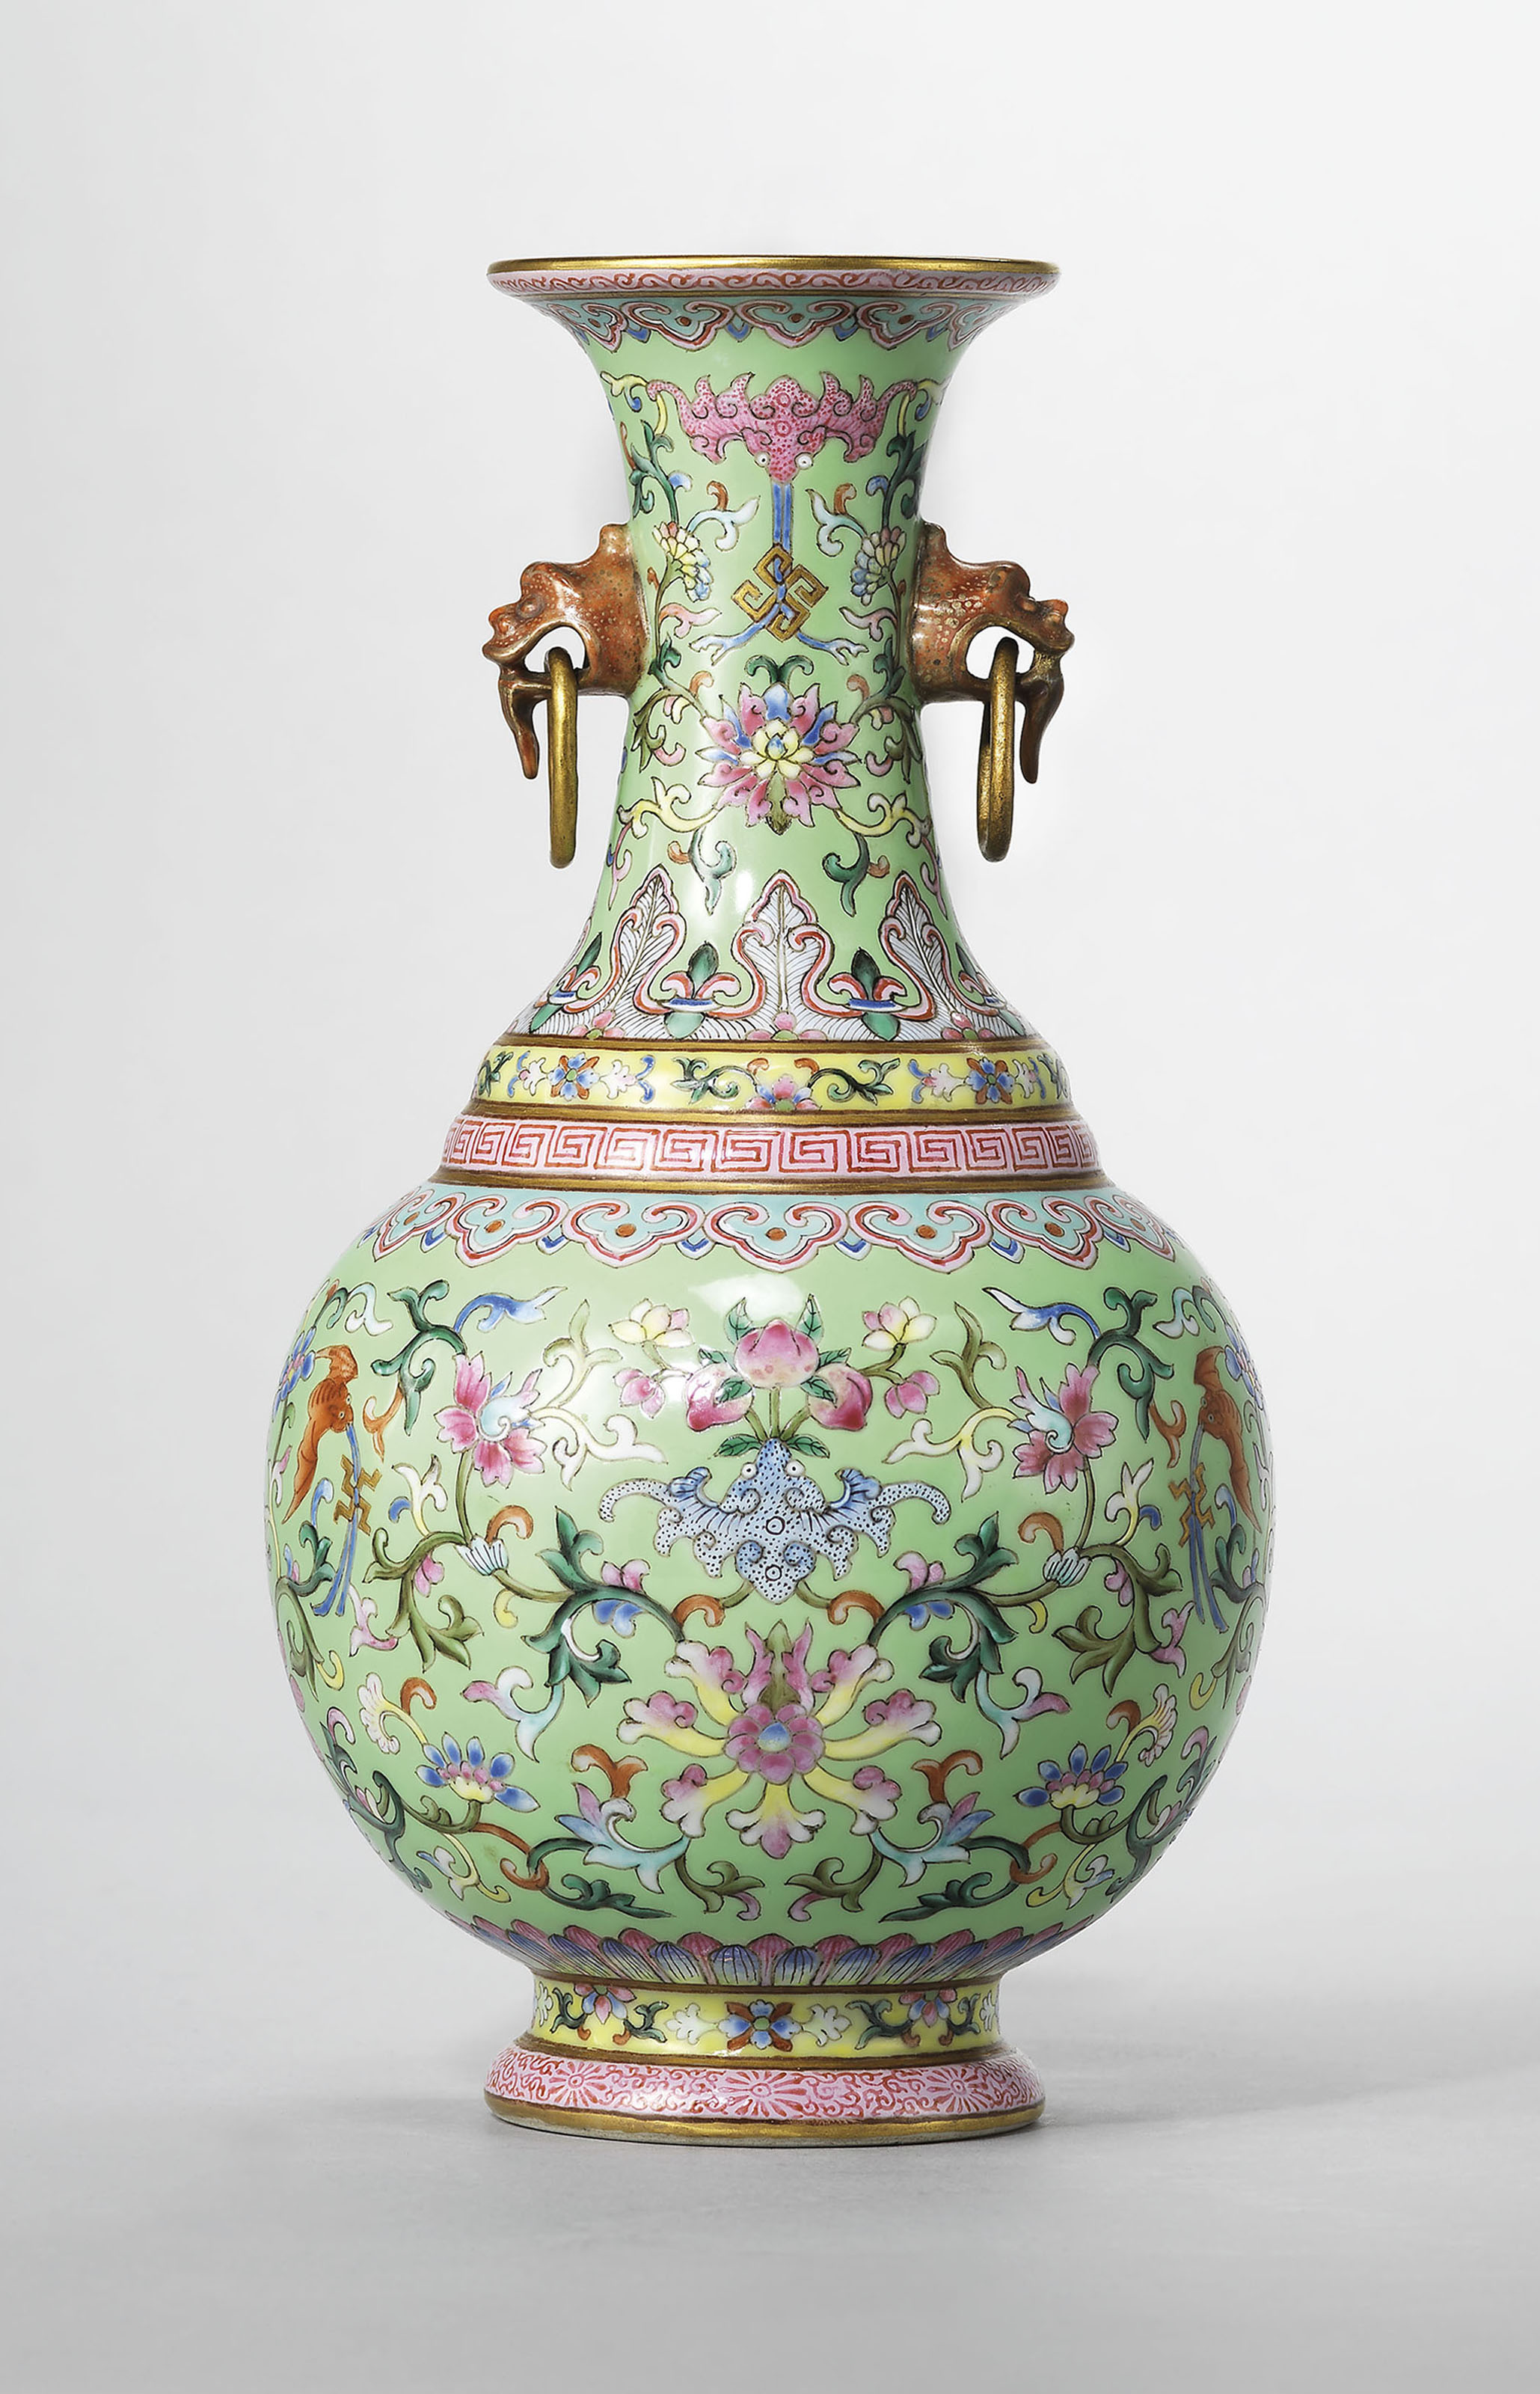 A lime-green ground famille rose twin-handled vase, Jiaqing six-character sealmark in iron-red and of the period (1796-1820). 7¾  in (19.8  cm) high. Estimate £80,000-120,000. Offered in Rarity and Refinement Treasures from a Distinguished East Asian Collection on 15 May at Christie's in London